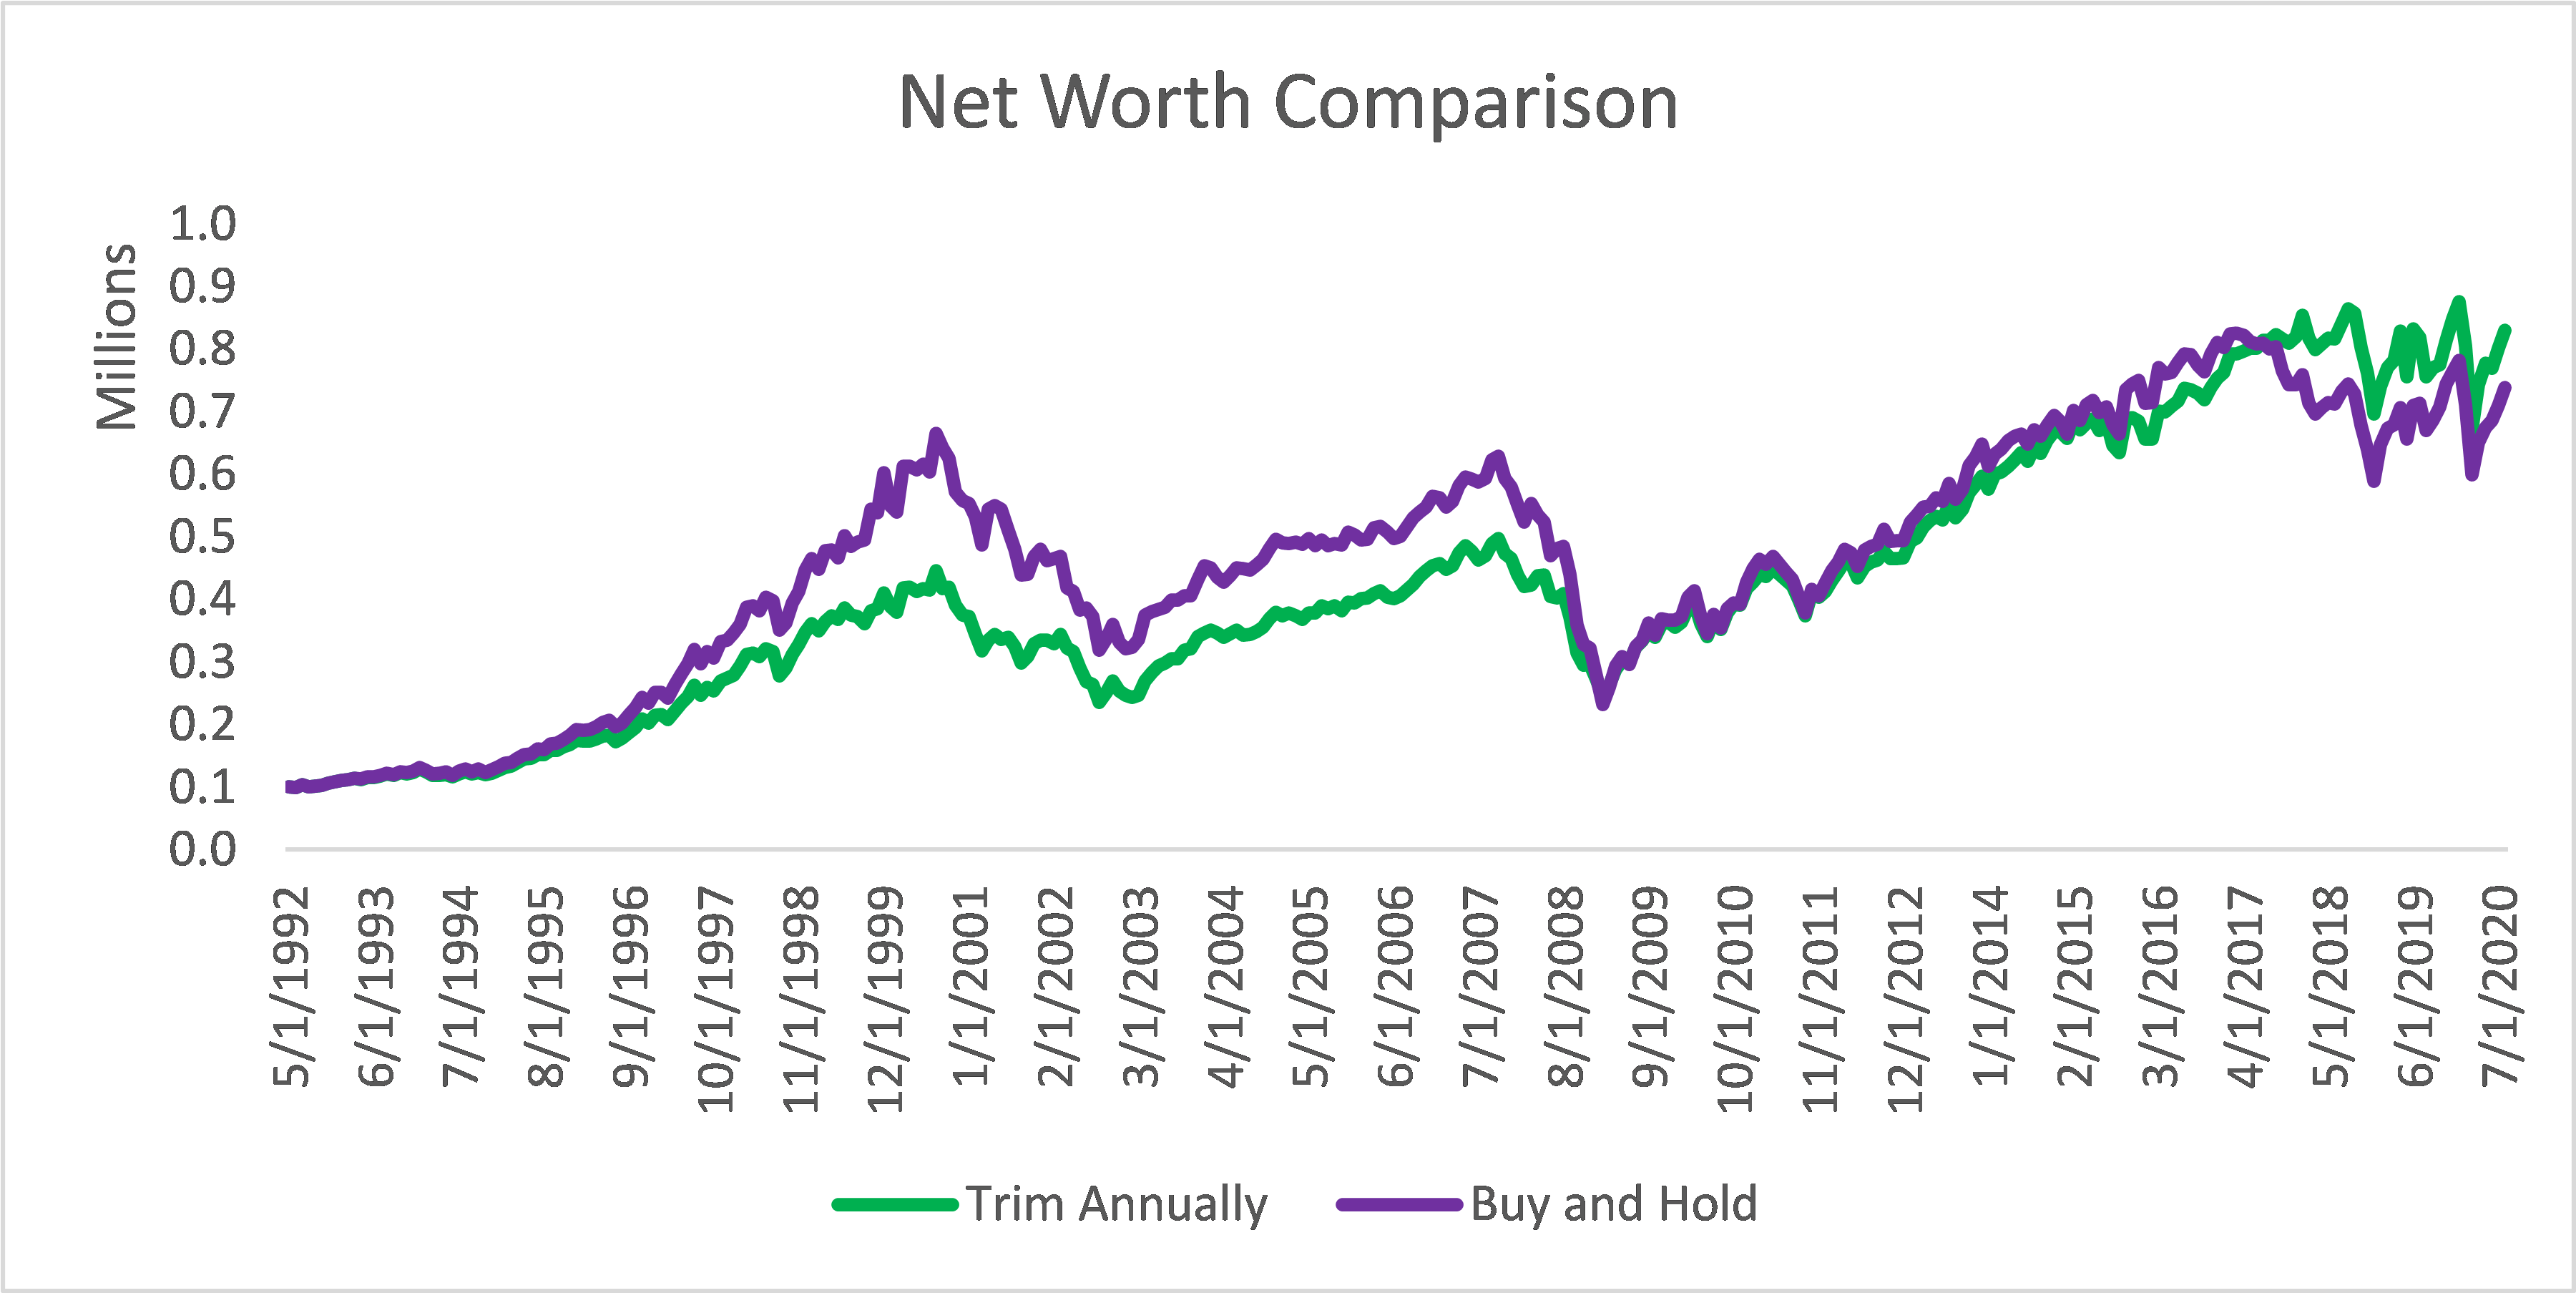 Net Worth comparison including GE and PG&E as stock runners